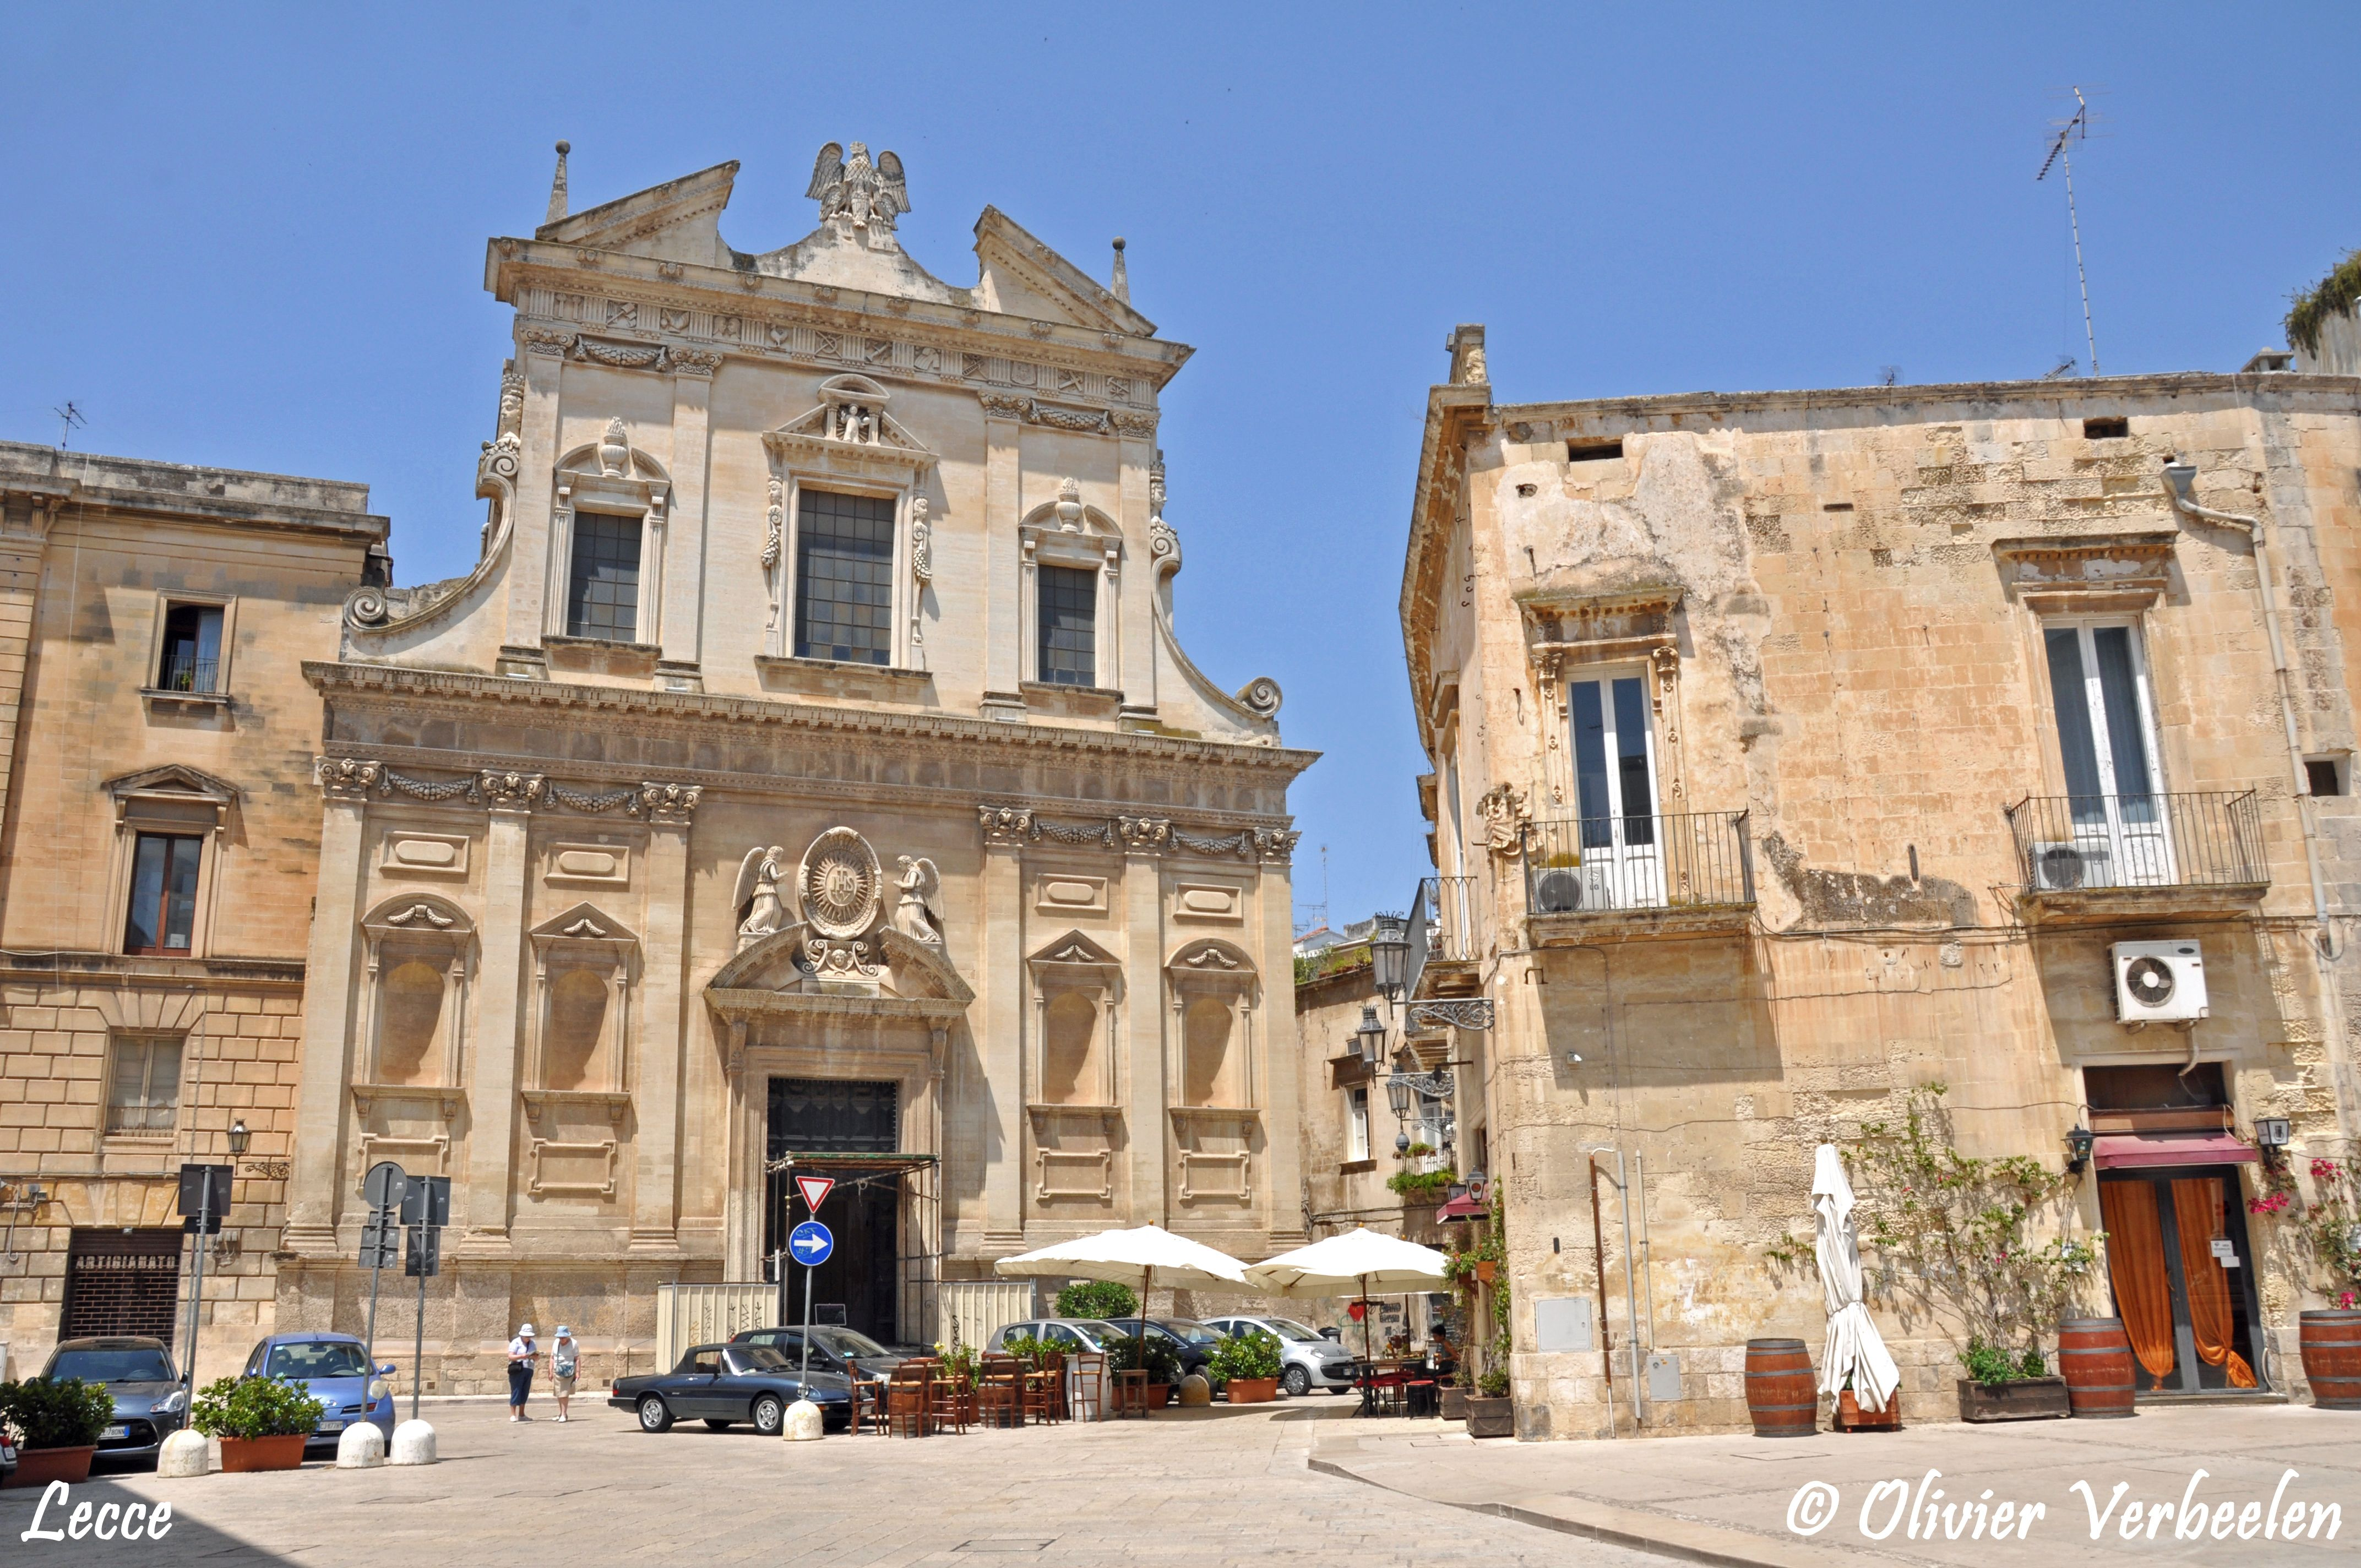 "Lecce, The ""Florence of South"", Apulia (July 2016) / #Lecce #Florence #Apulia #Puglia #Pouilles #Italy #Italia #Italie #Authentic #Emotions #Experiences #Trip #Viaggio #Voyage #Gastronomy #Gastronomia #Gastronomie #Discovery #Scoperta #Découverte #WeAreinPuglia #ApuliaEventsExperiences #AEE"